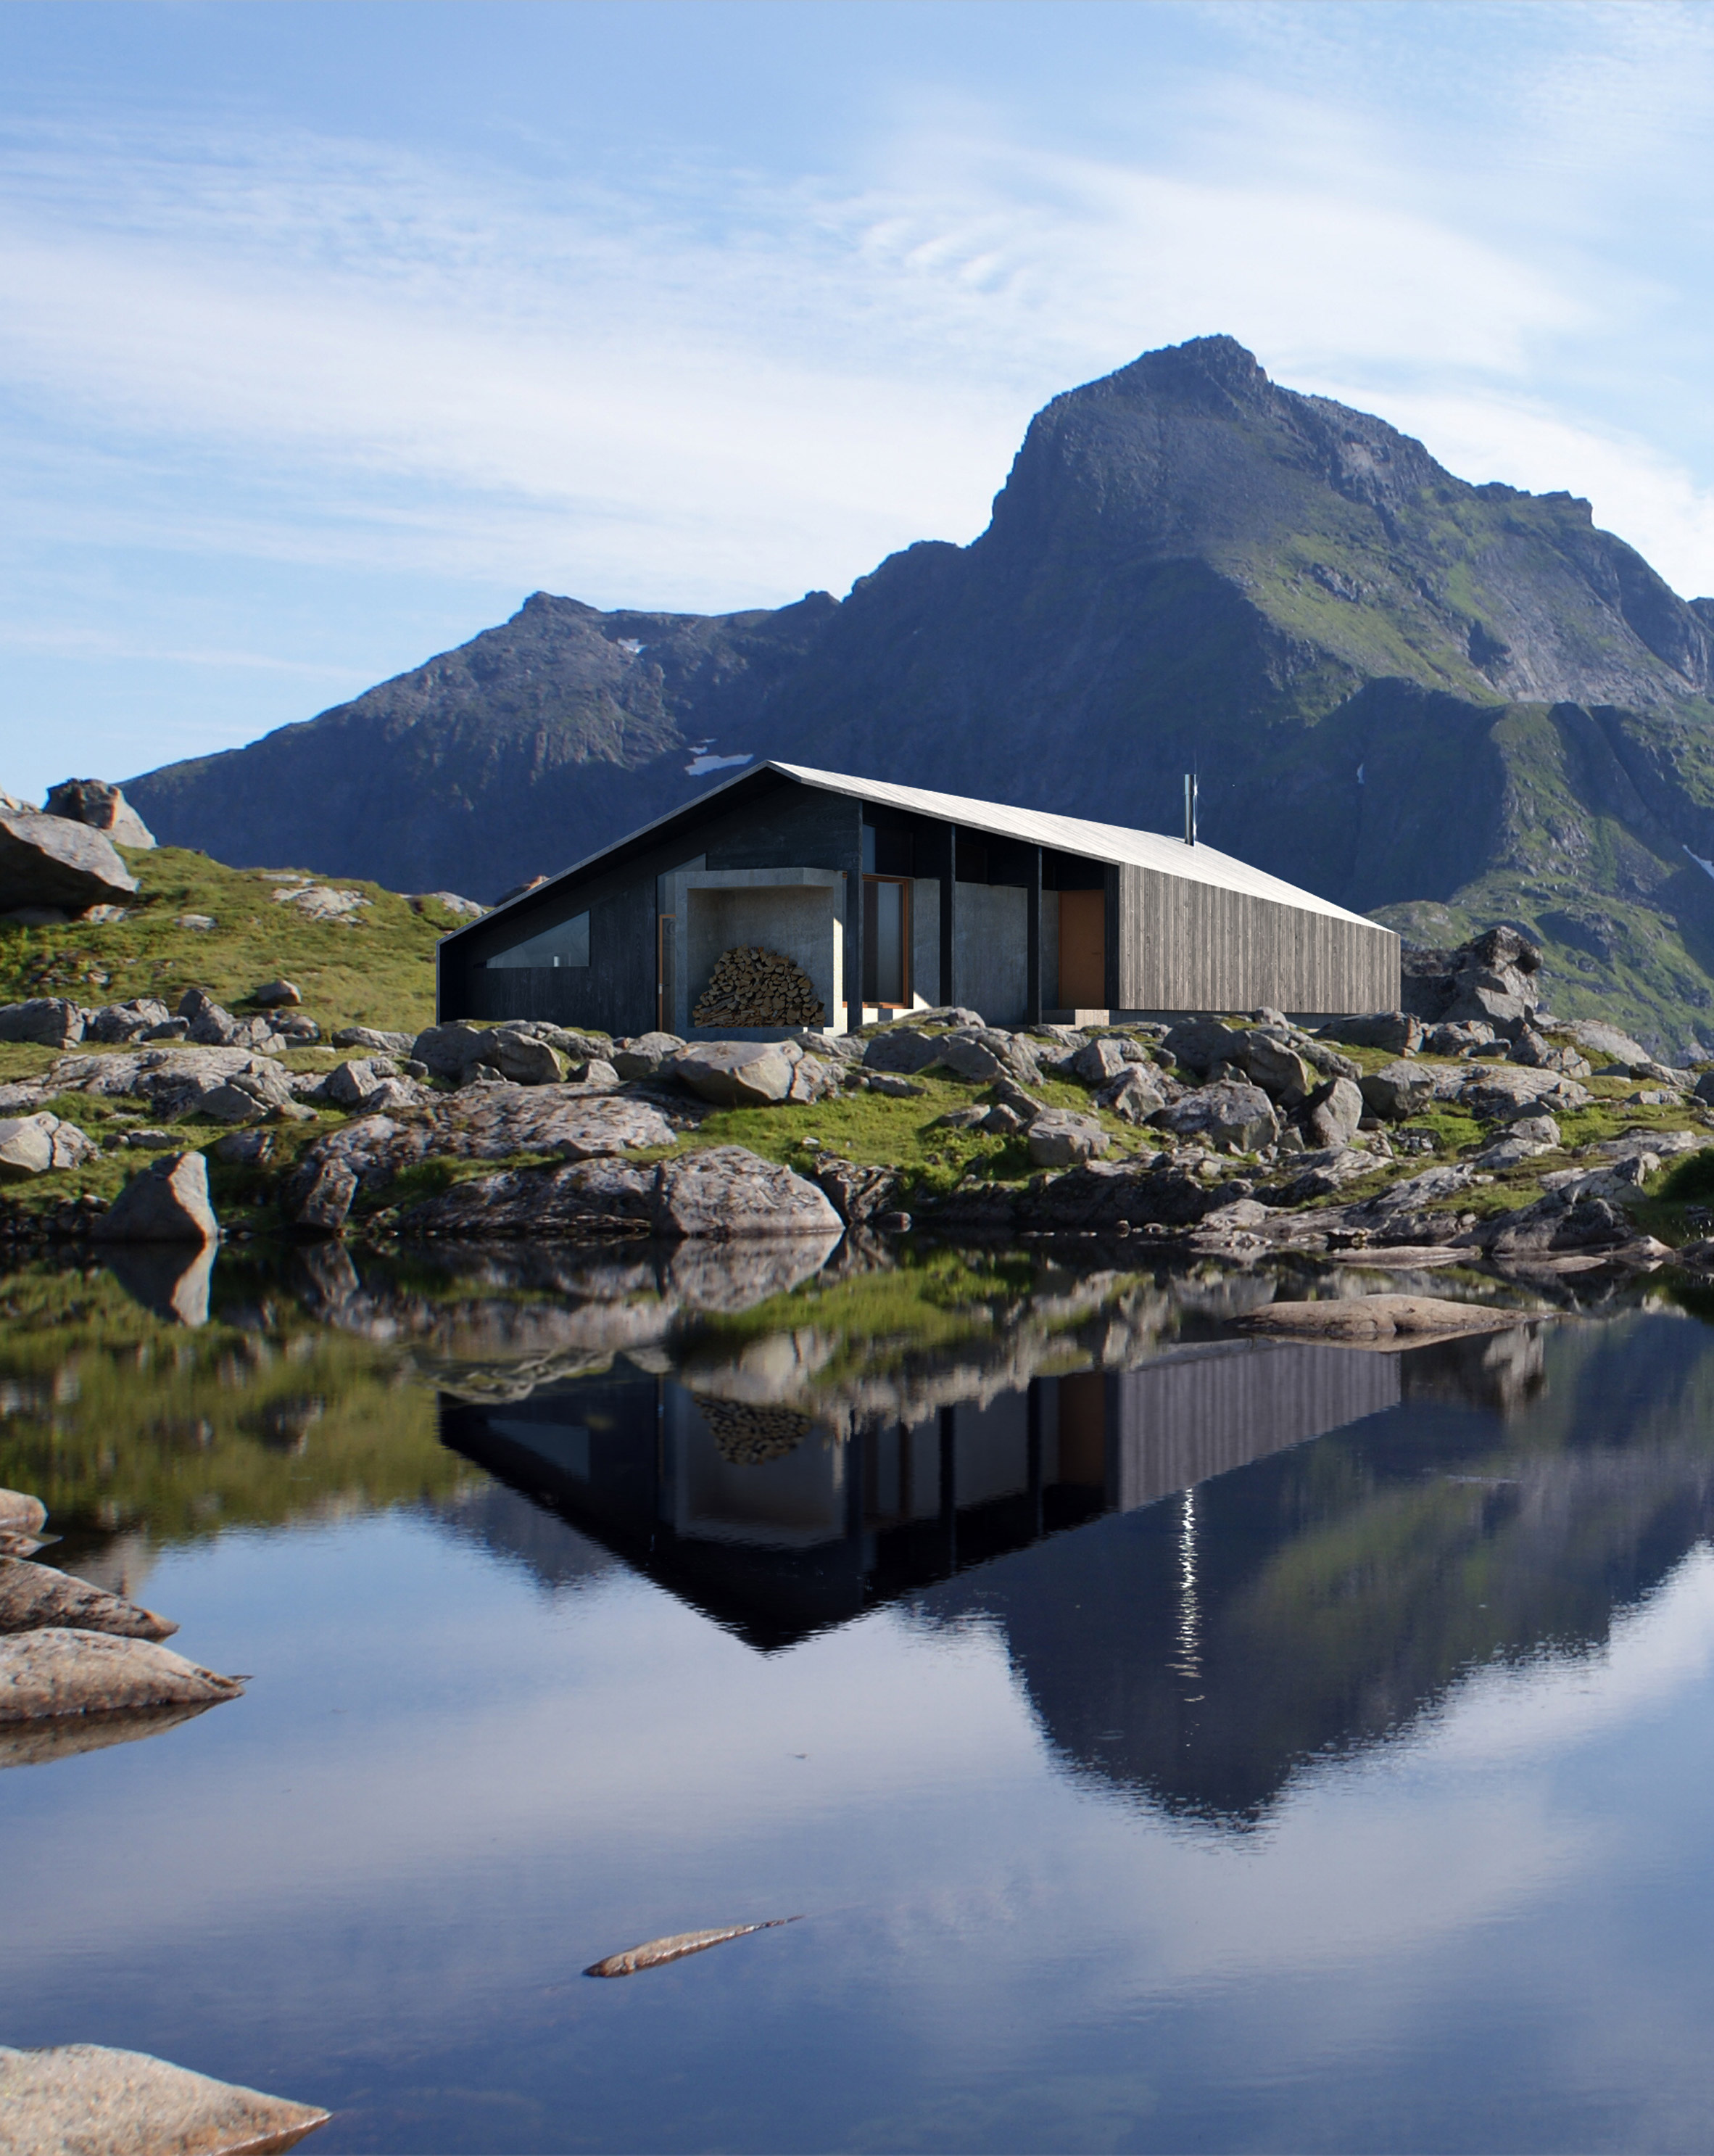 Snøhetta's prefab Gapahuk cabin references a traditional Norwegian mountain shelter